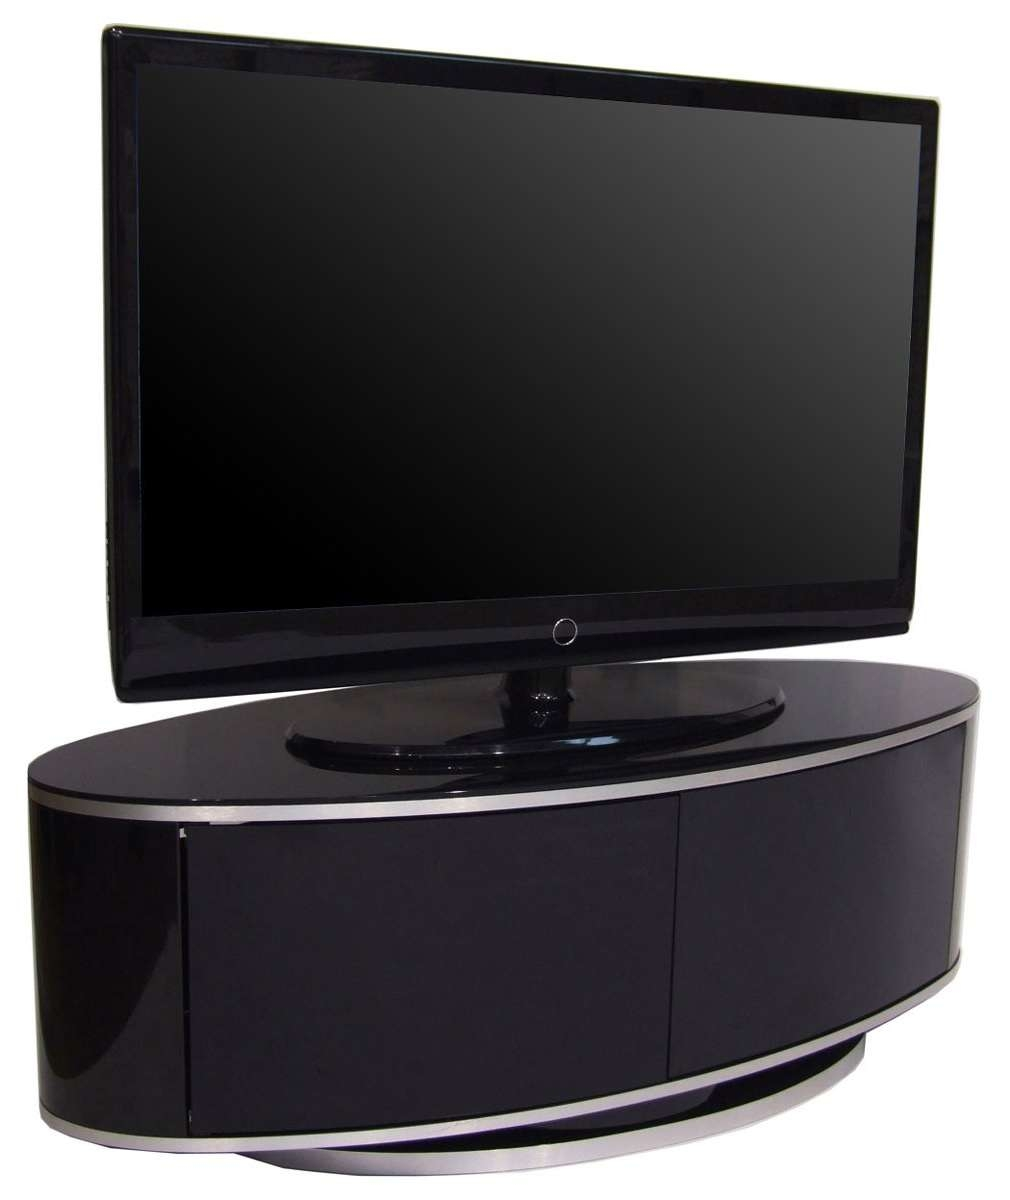 Luna High Gloss Black Oval Tv Cabinet Intended For Oval Tv Stands (View 7 of 20)